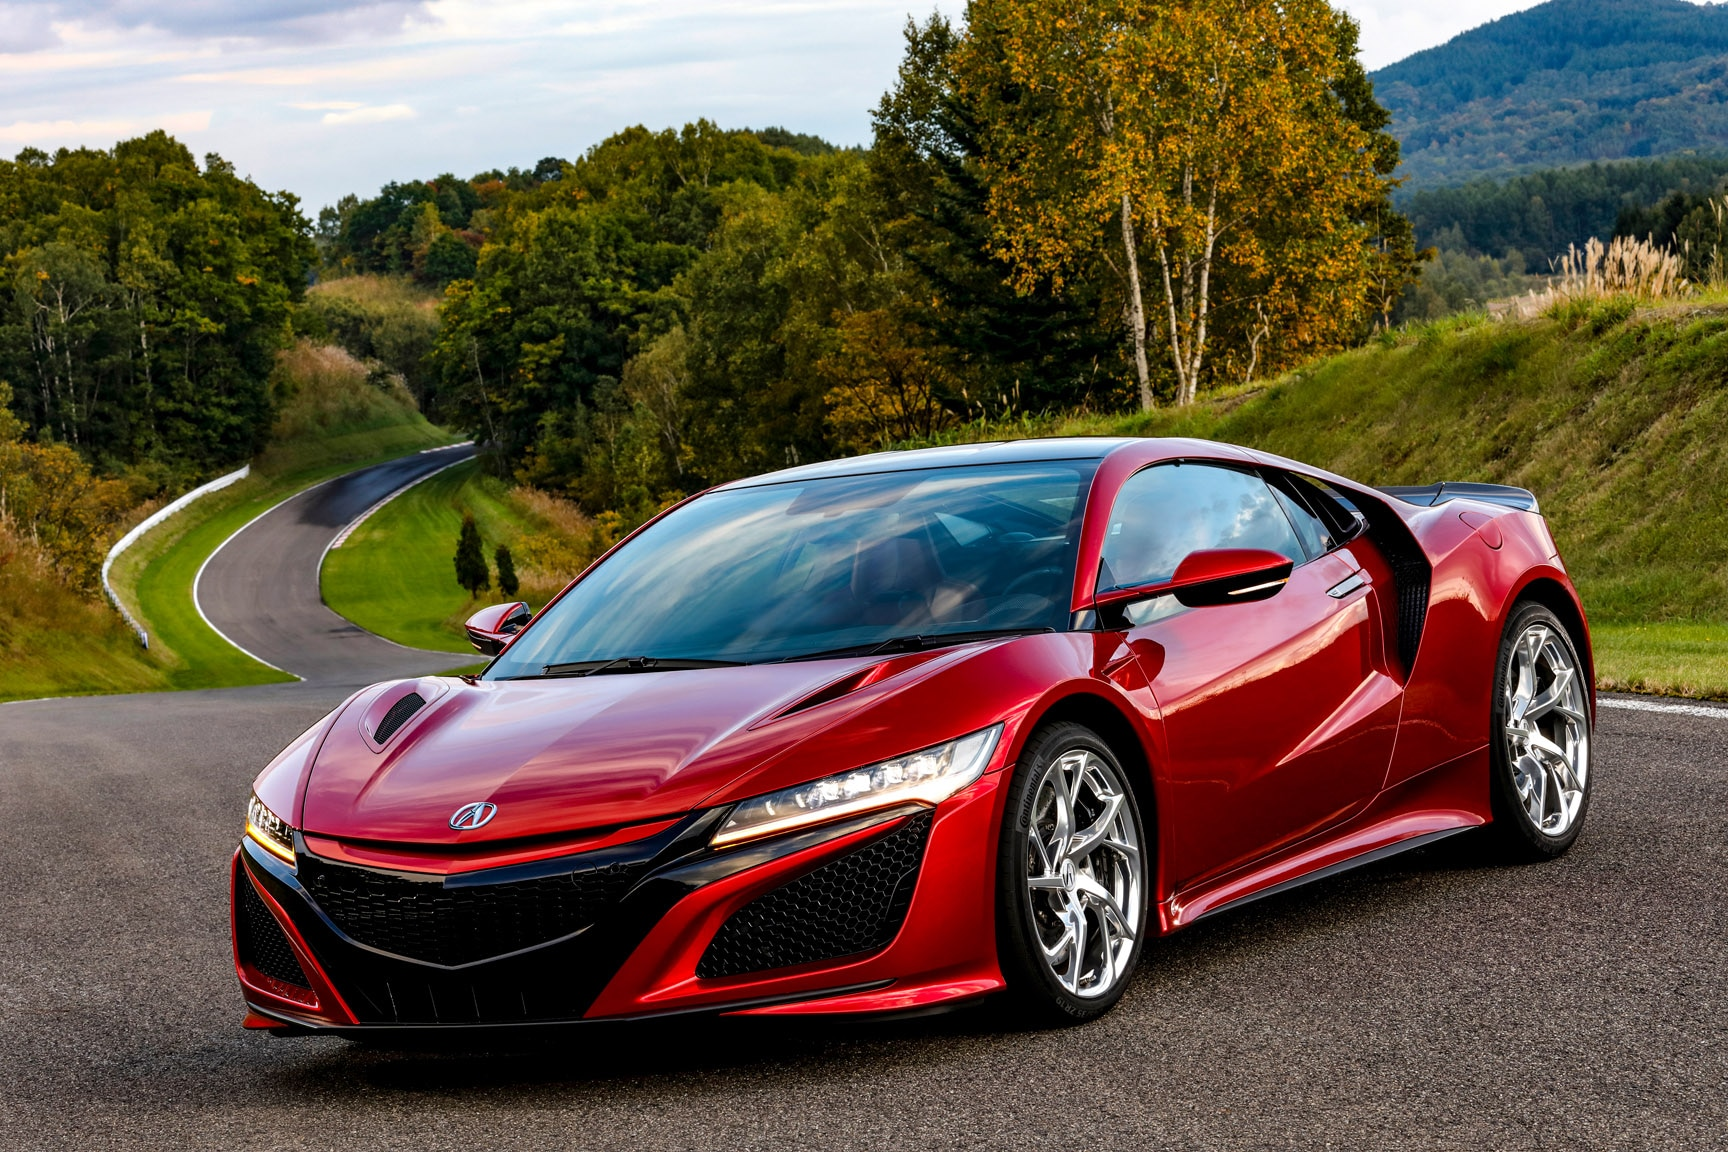 2019 Acura Nsx First Drive Review Automobile Magazine